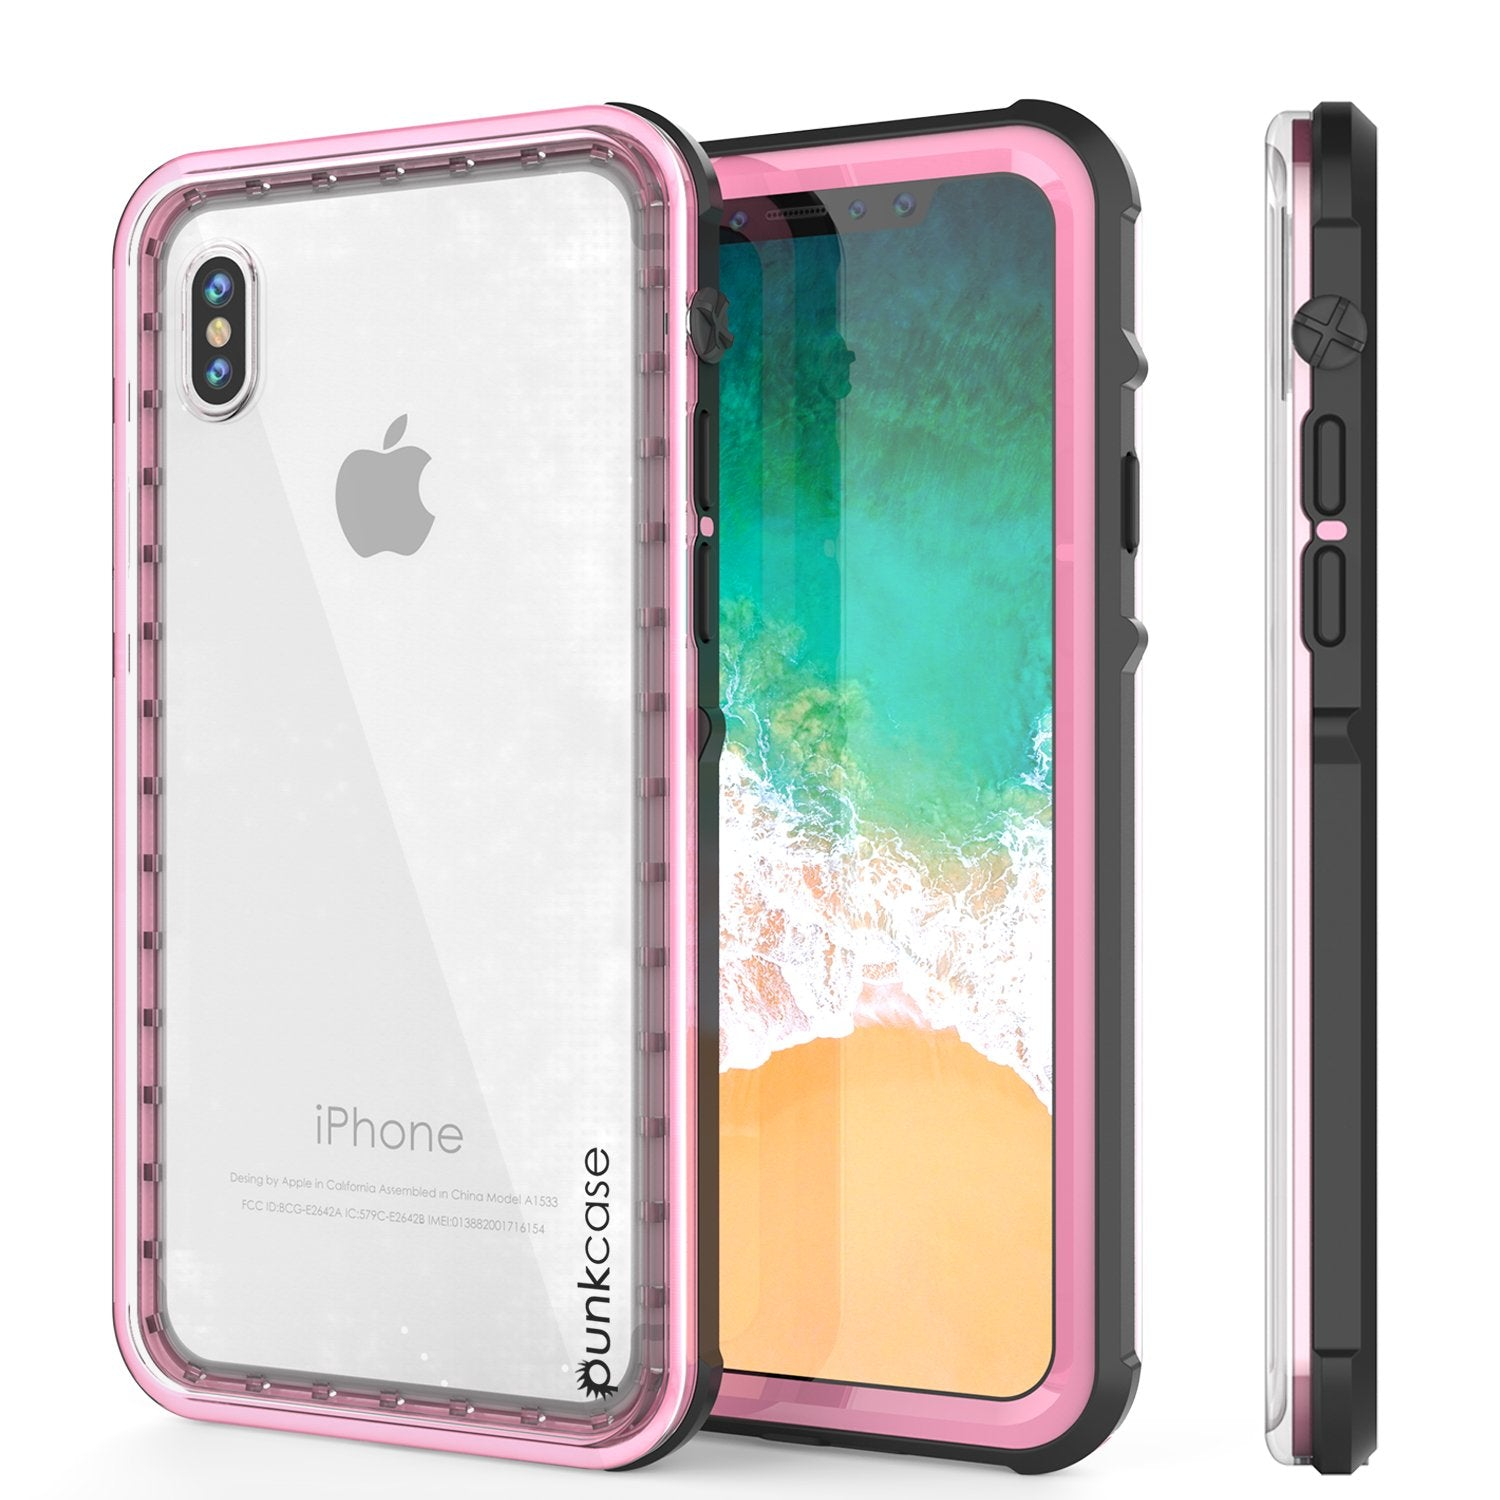 iPhone XS Case, PUNKCase [CRYSTAL SERIES] Protective IP68 Certified Cover [Pink]